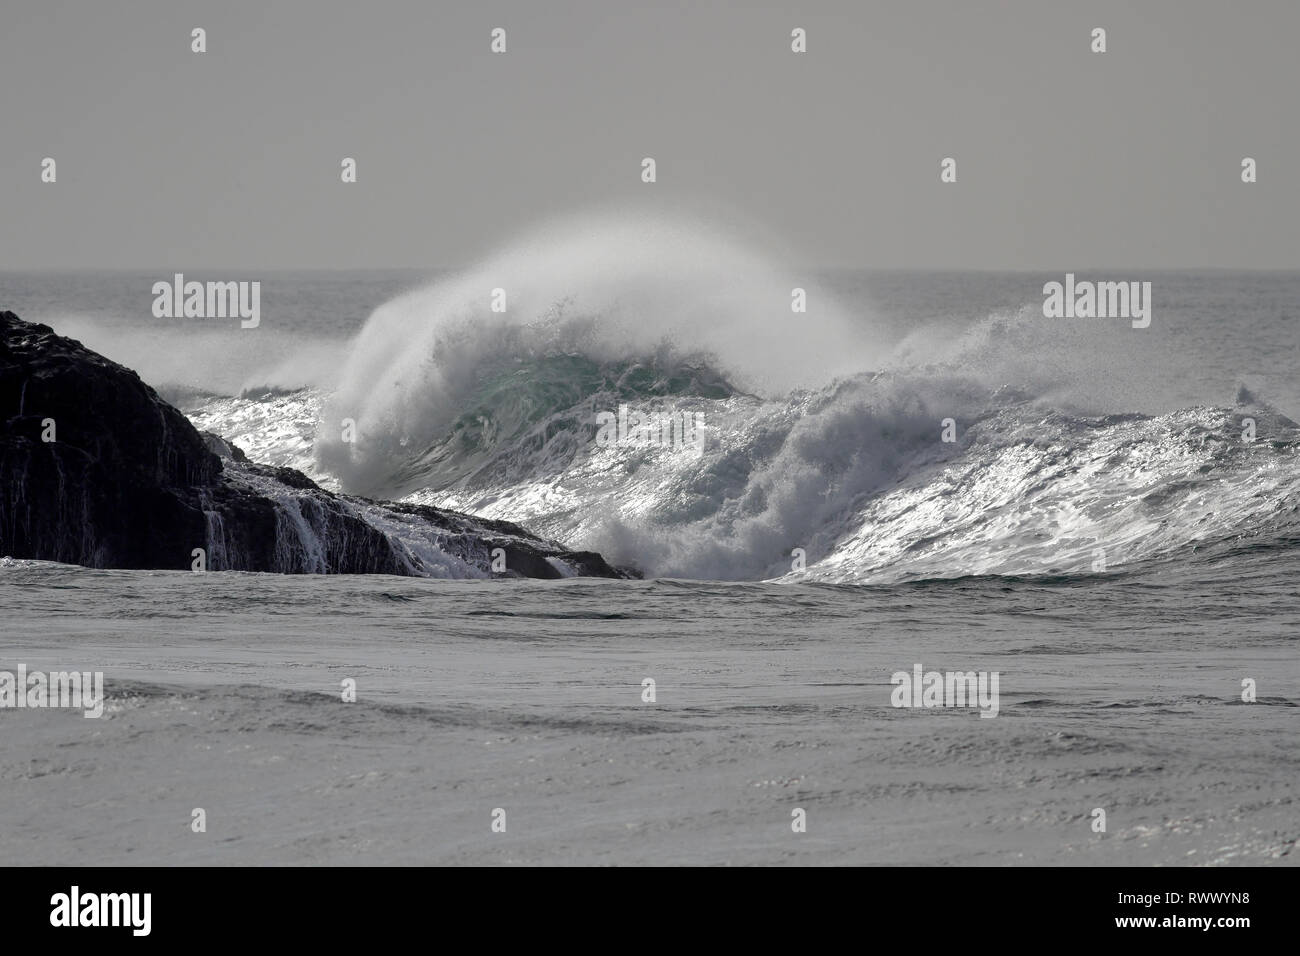 Sunny sea wave with wind spray. Northern portuguese coast. - Stock Image